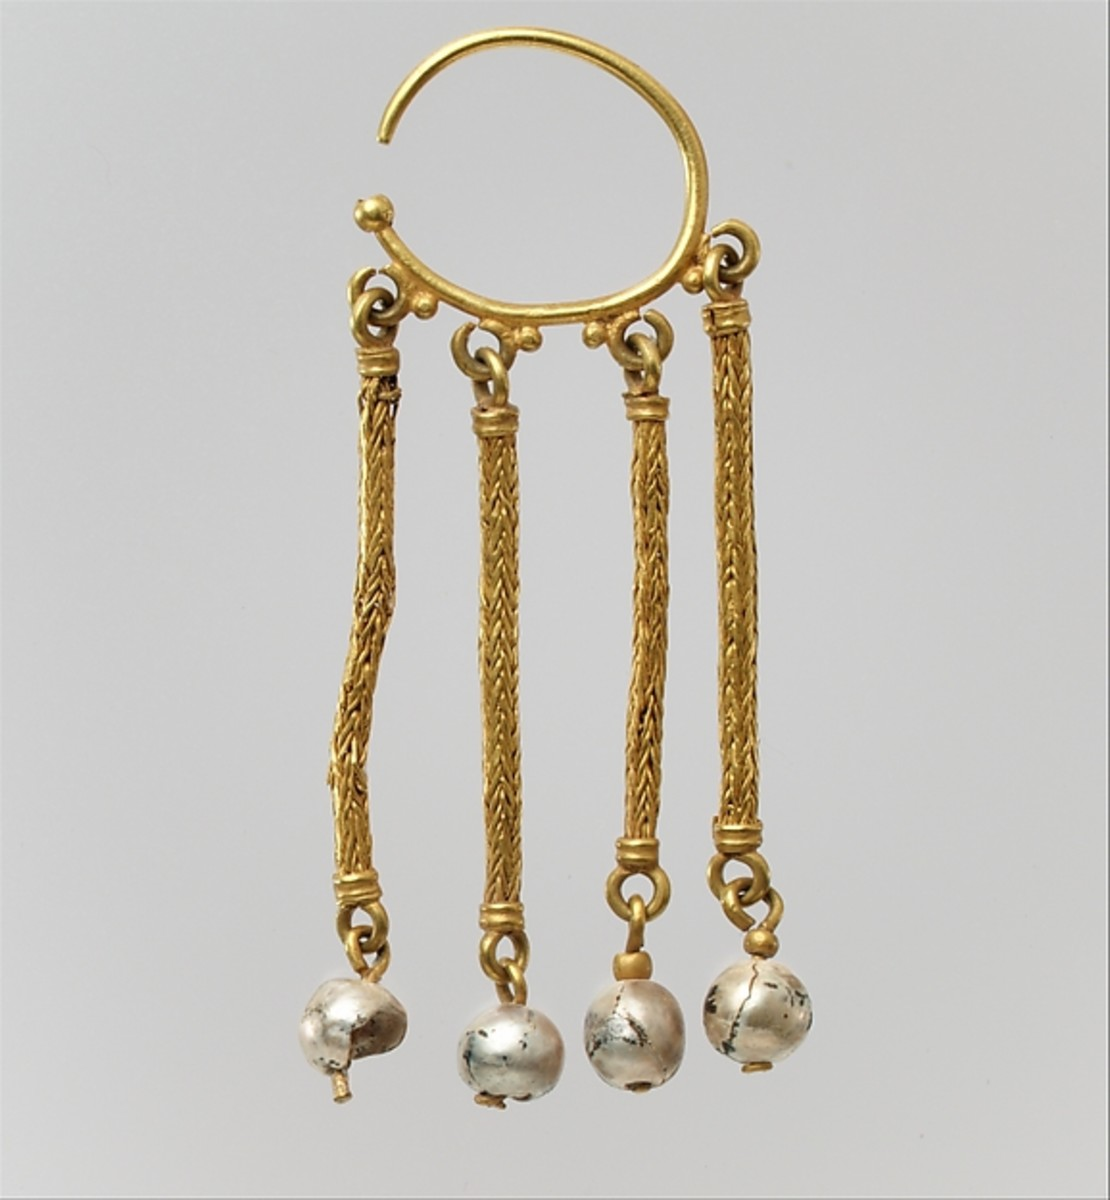 Date:	Between 6th and 7th century Medium:	Gold, pearls Location:	The Met Fifth Avenue in Gallery 302